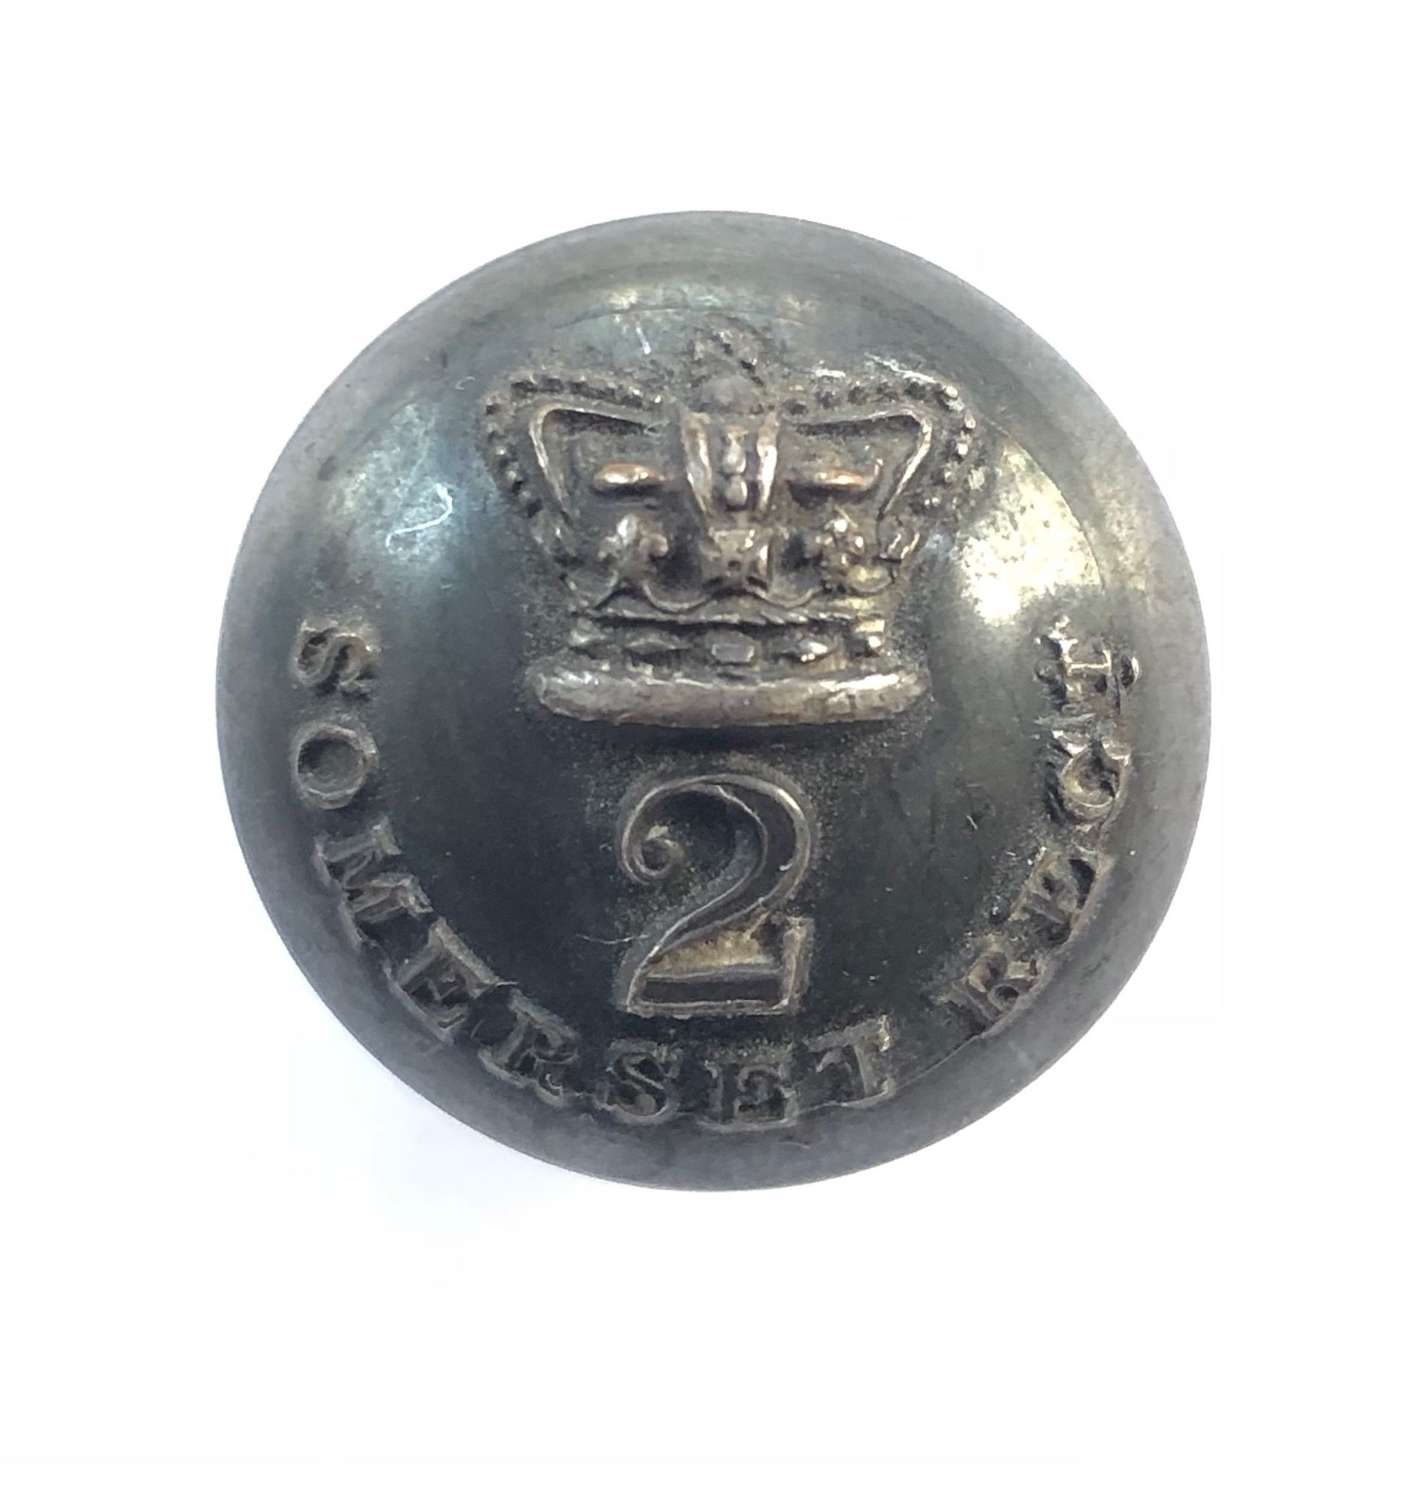 2nd Somerset Militia Victorian Officer's coatee button